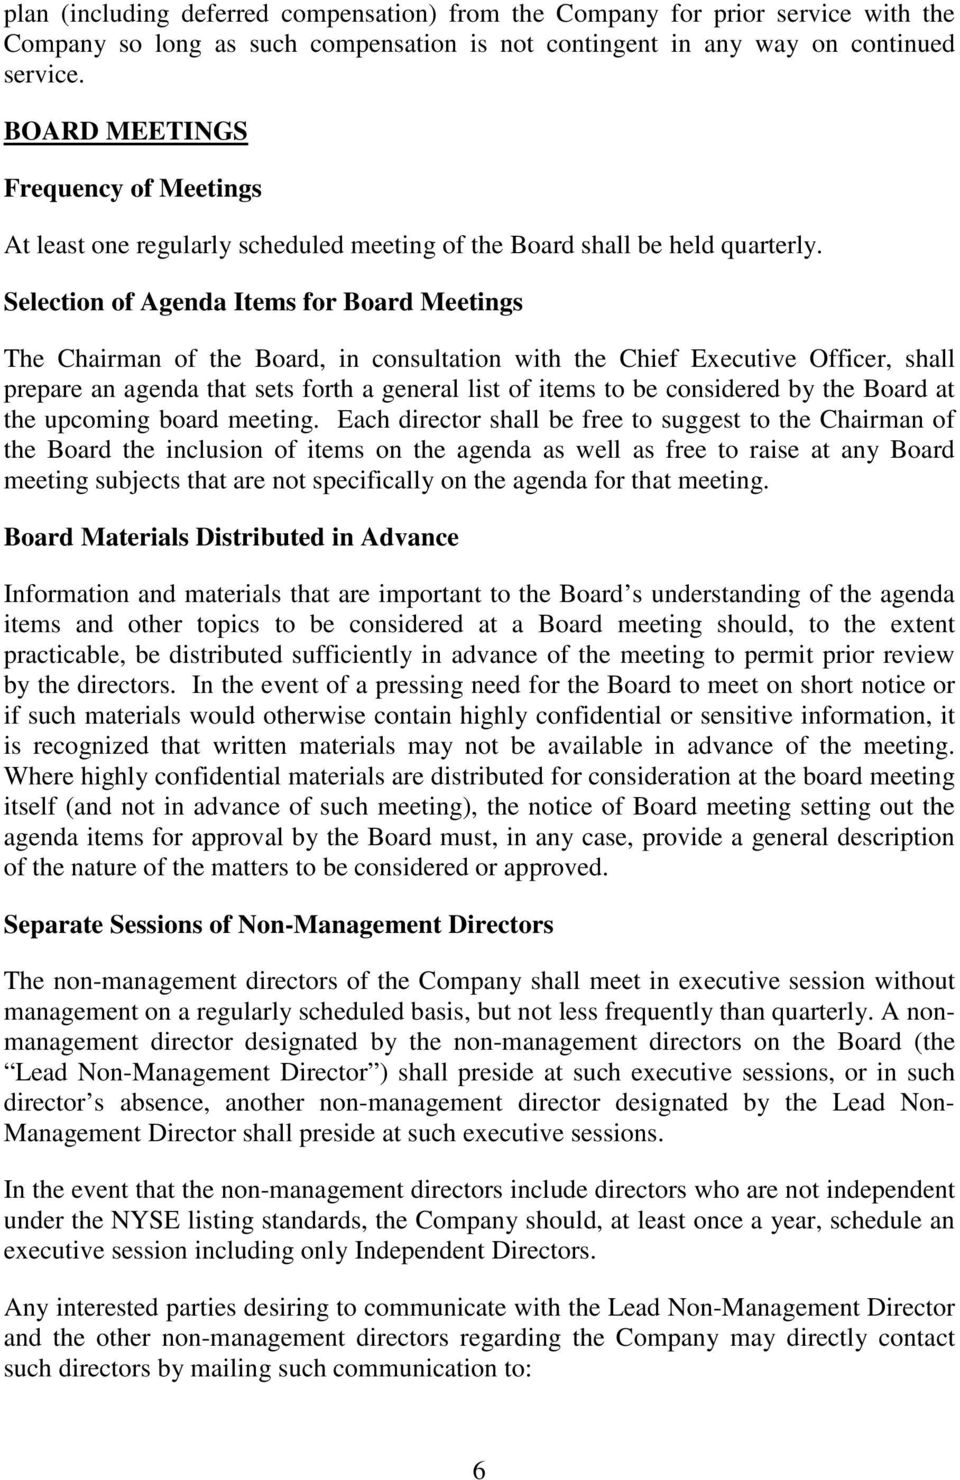 Selection of Agenda Items for Board Meetings The Chairman of the Board, in consultation with the Chief Executive Officer, shall prepare an agenda that sets forth a general list of items to be